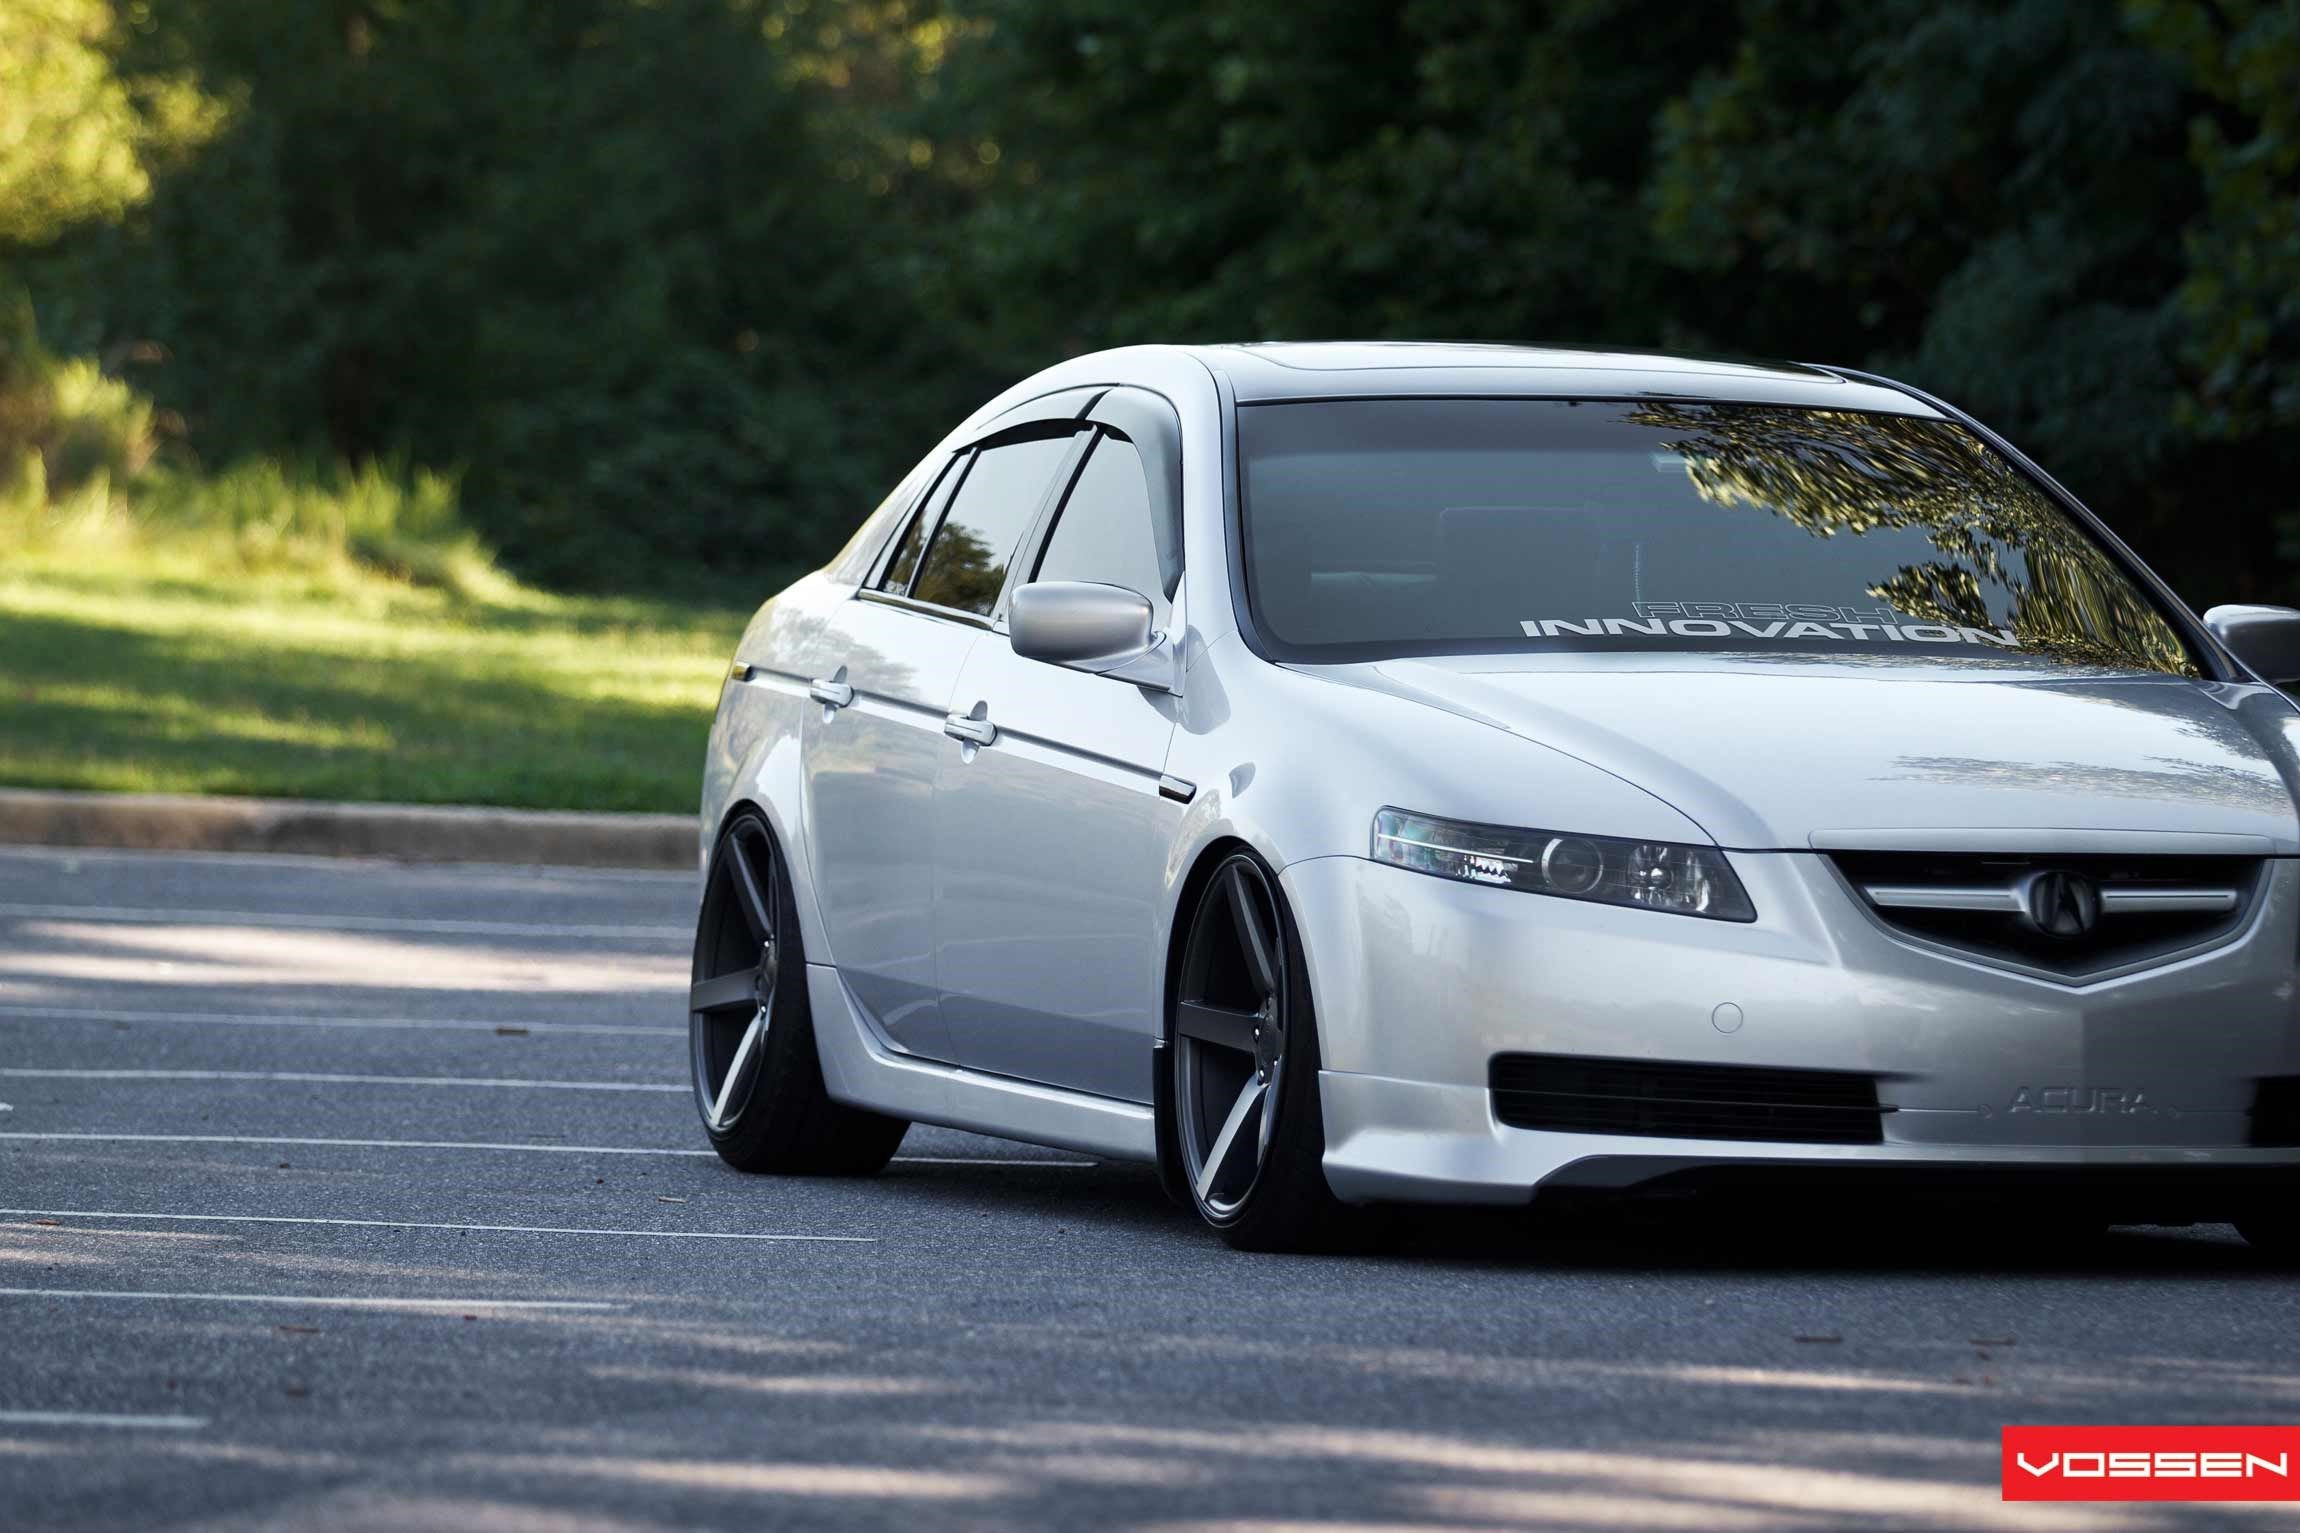 Vossen Wheels Acura TL Vossen CVR Tuna No Crust Pinterest - Rims for acura tl